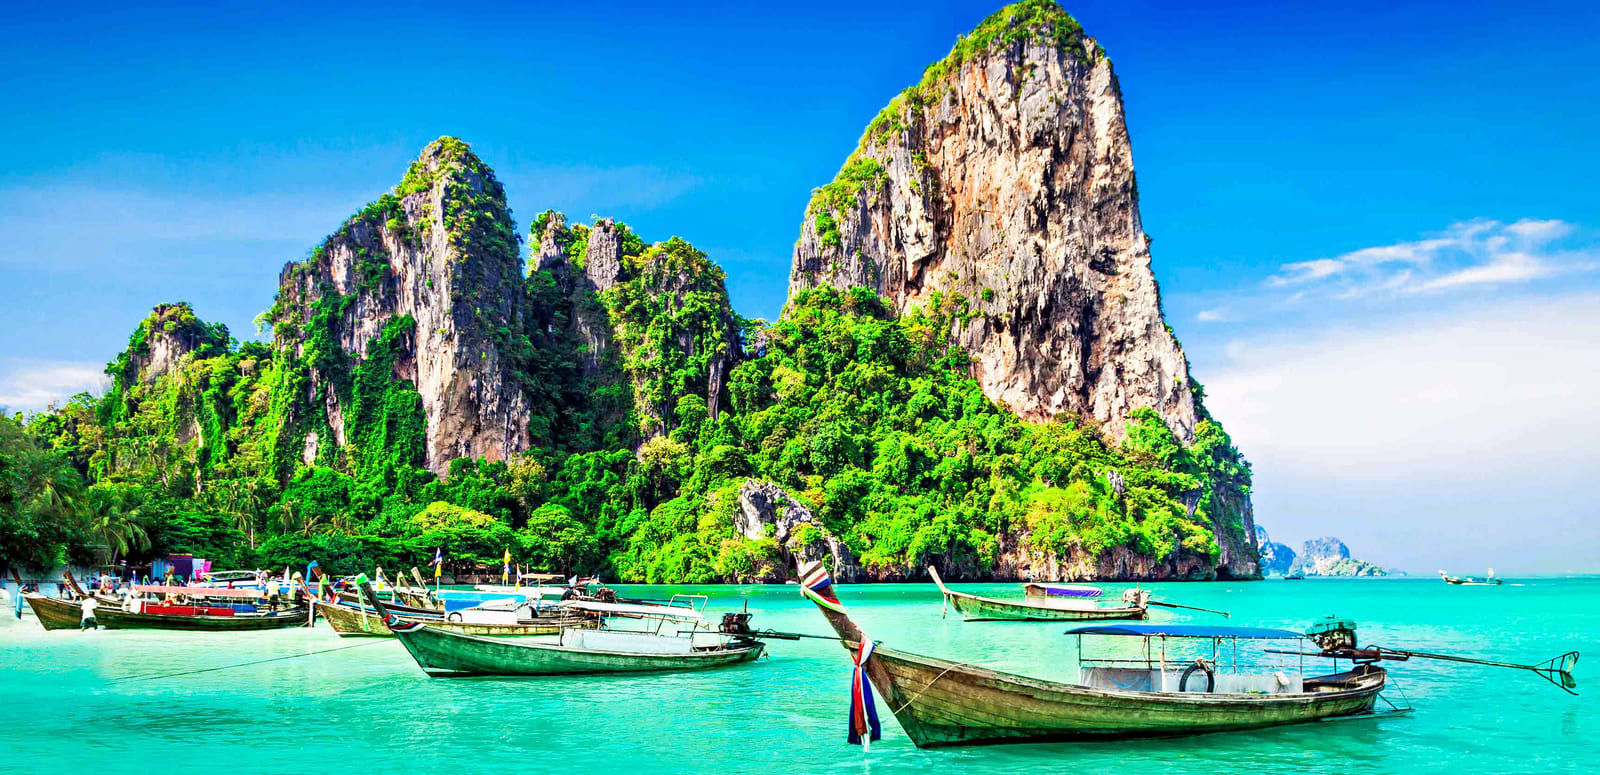 60 Best Places to Visit in Pattaya - 2019 (Photos & Reviews)